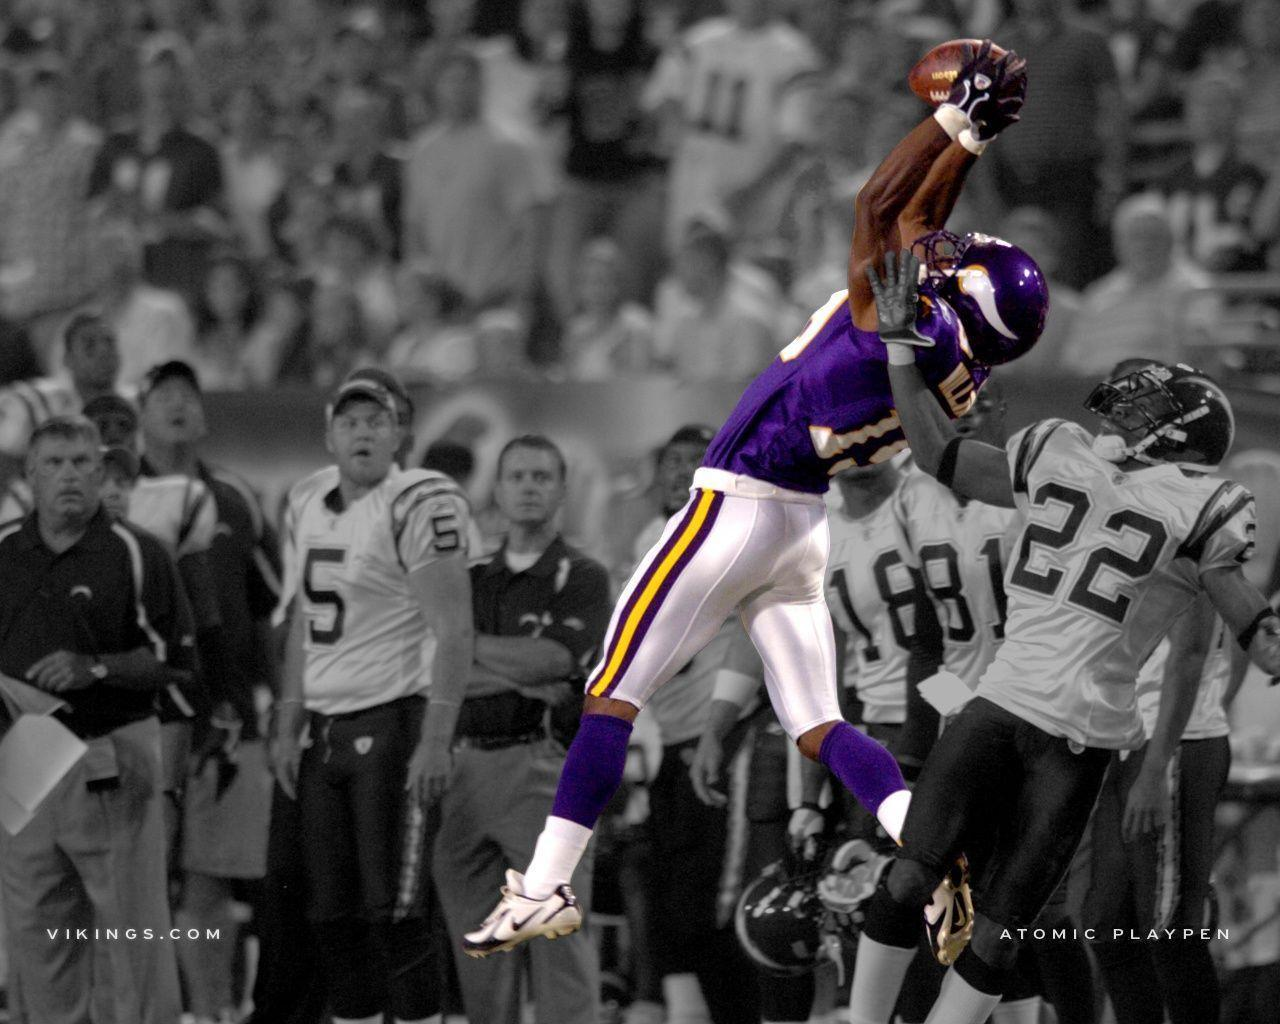 Minnesota Vikings Atomic Playpen Wallpaper